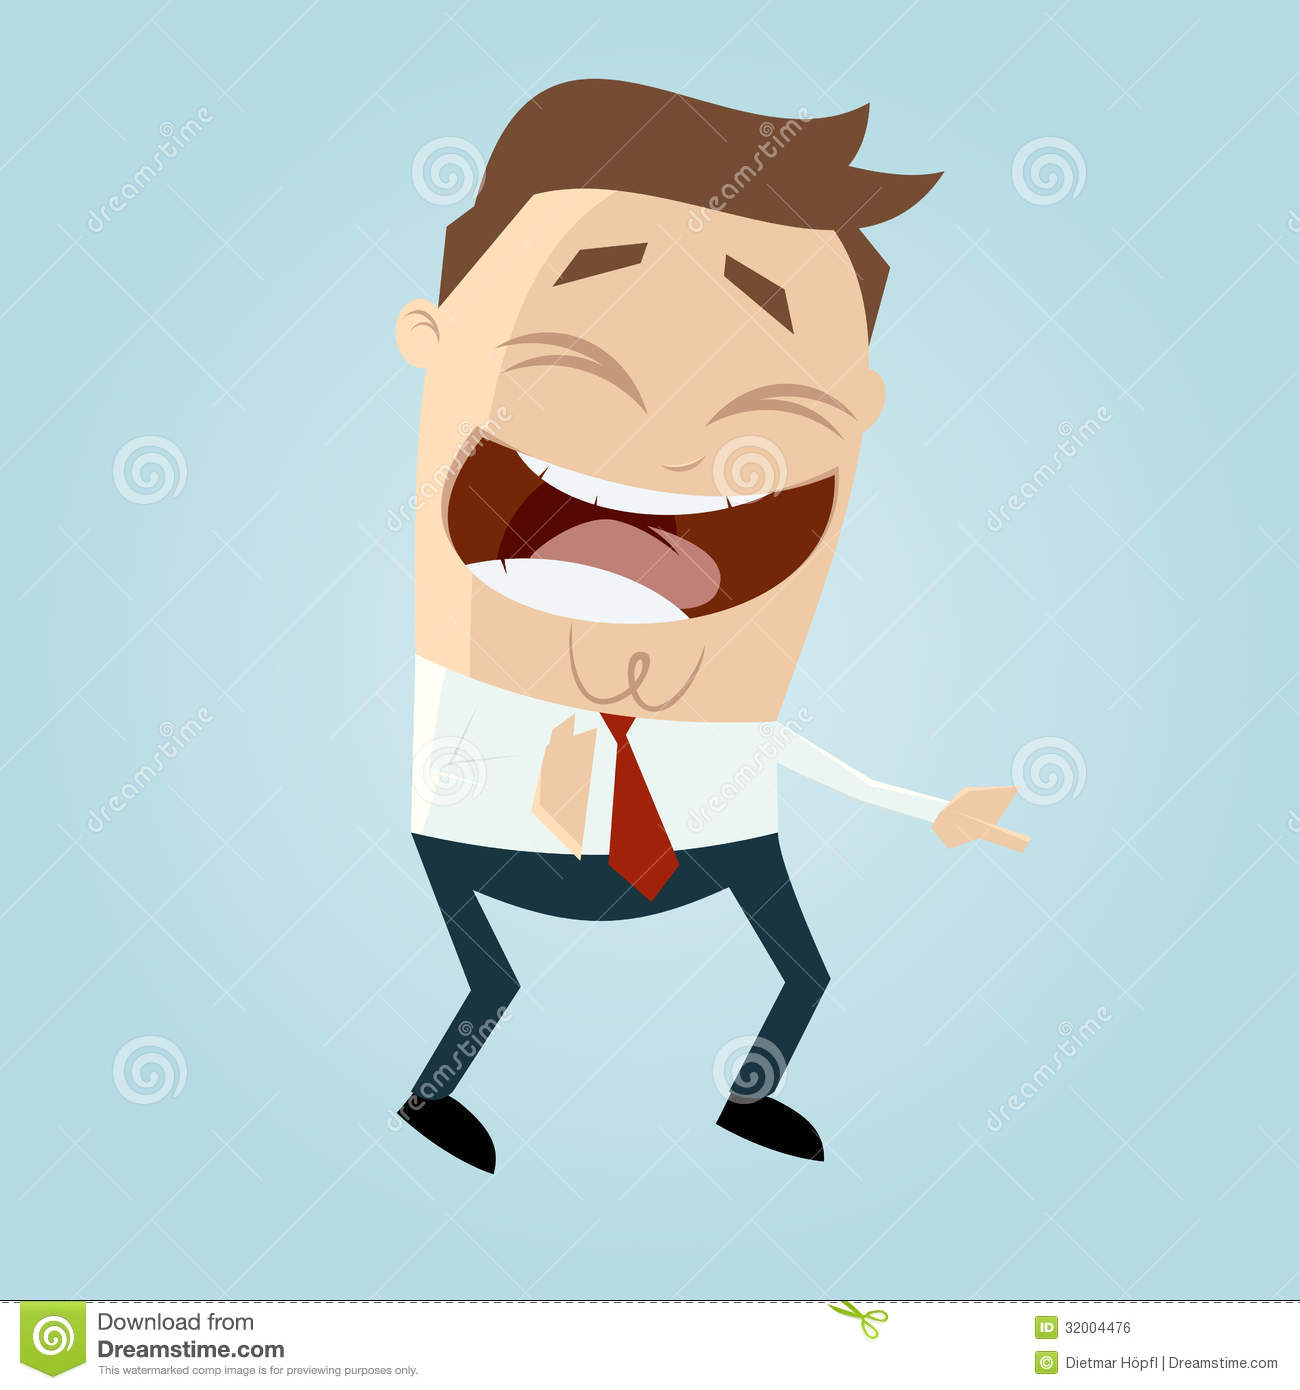 man laughing clipart - photo #43